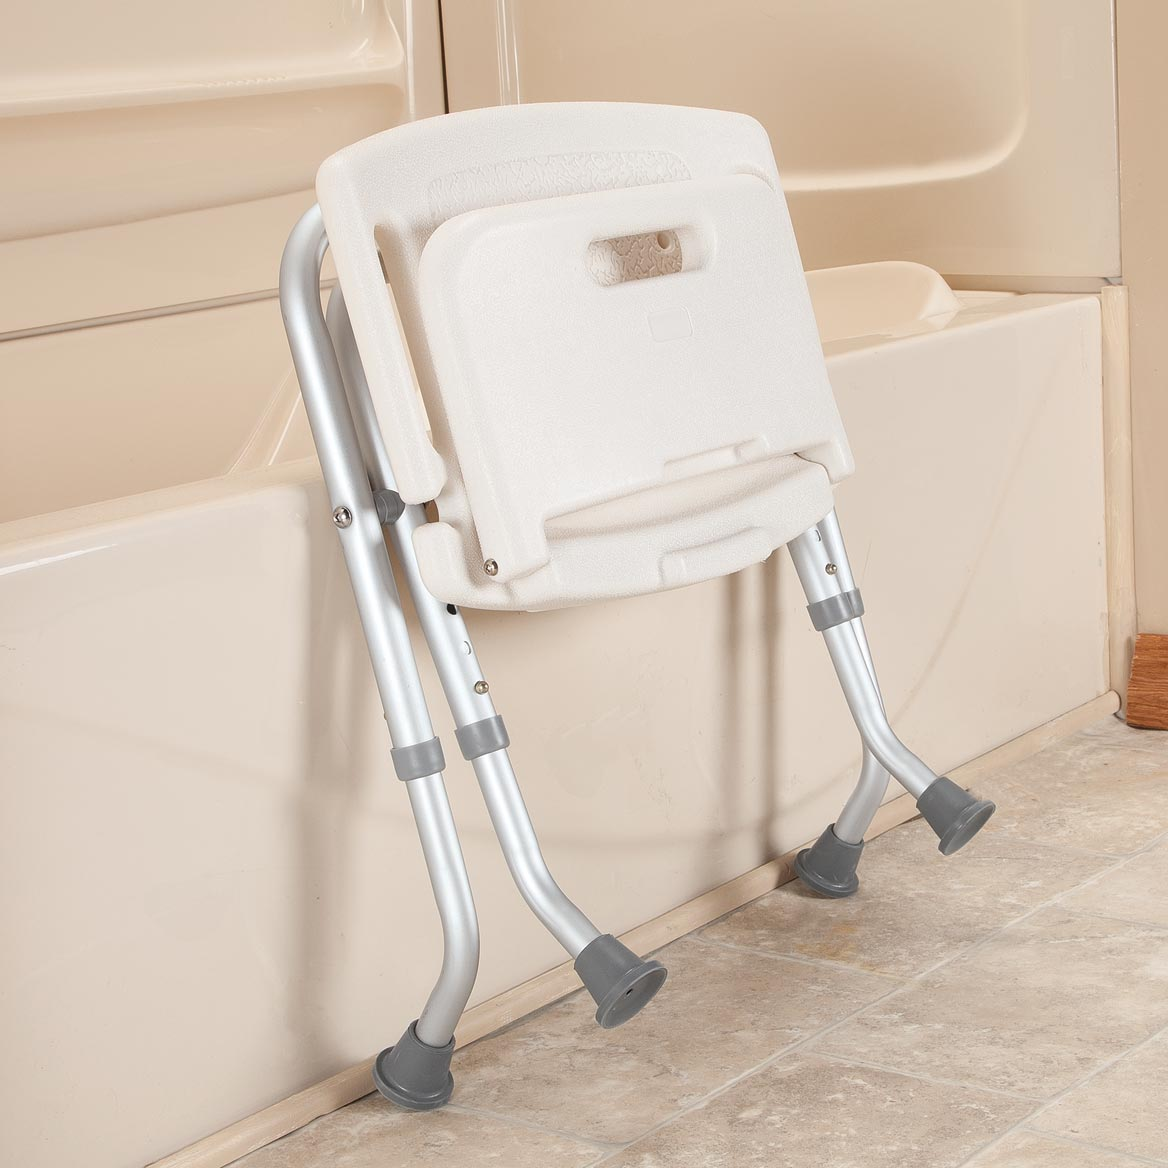 Folding Bath Seat with Back      XL-358607